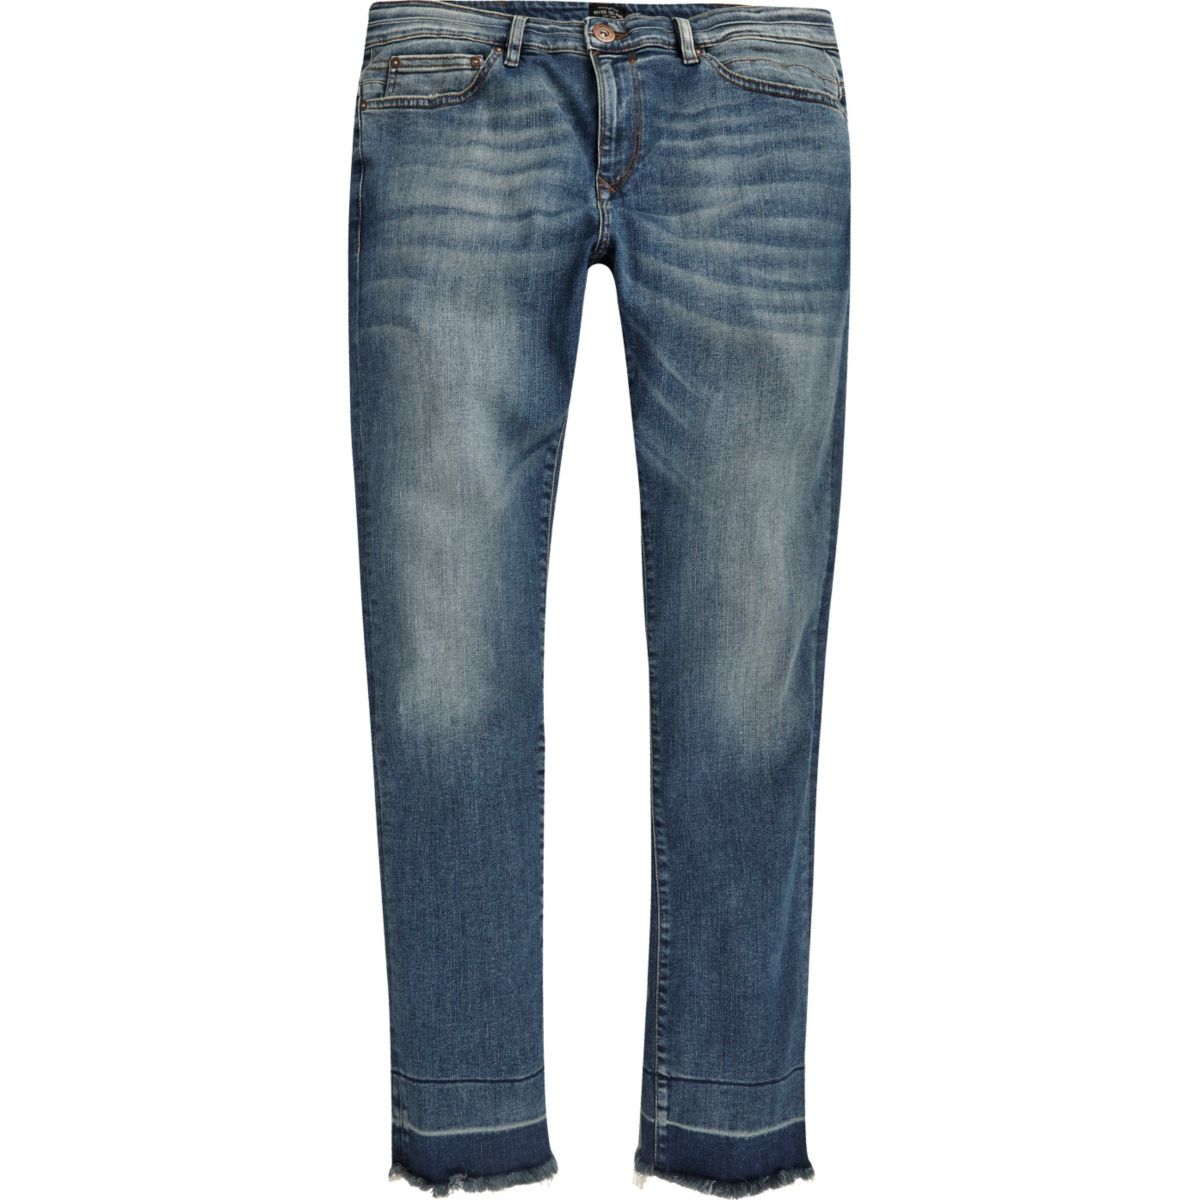 Ronny – Skinny Jeans in blauer Waschung